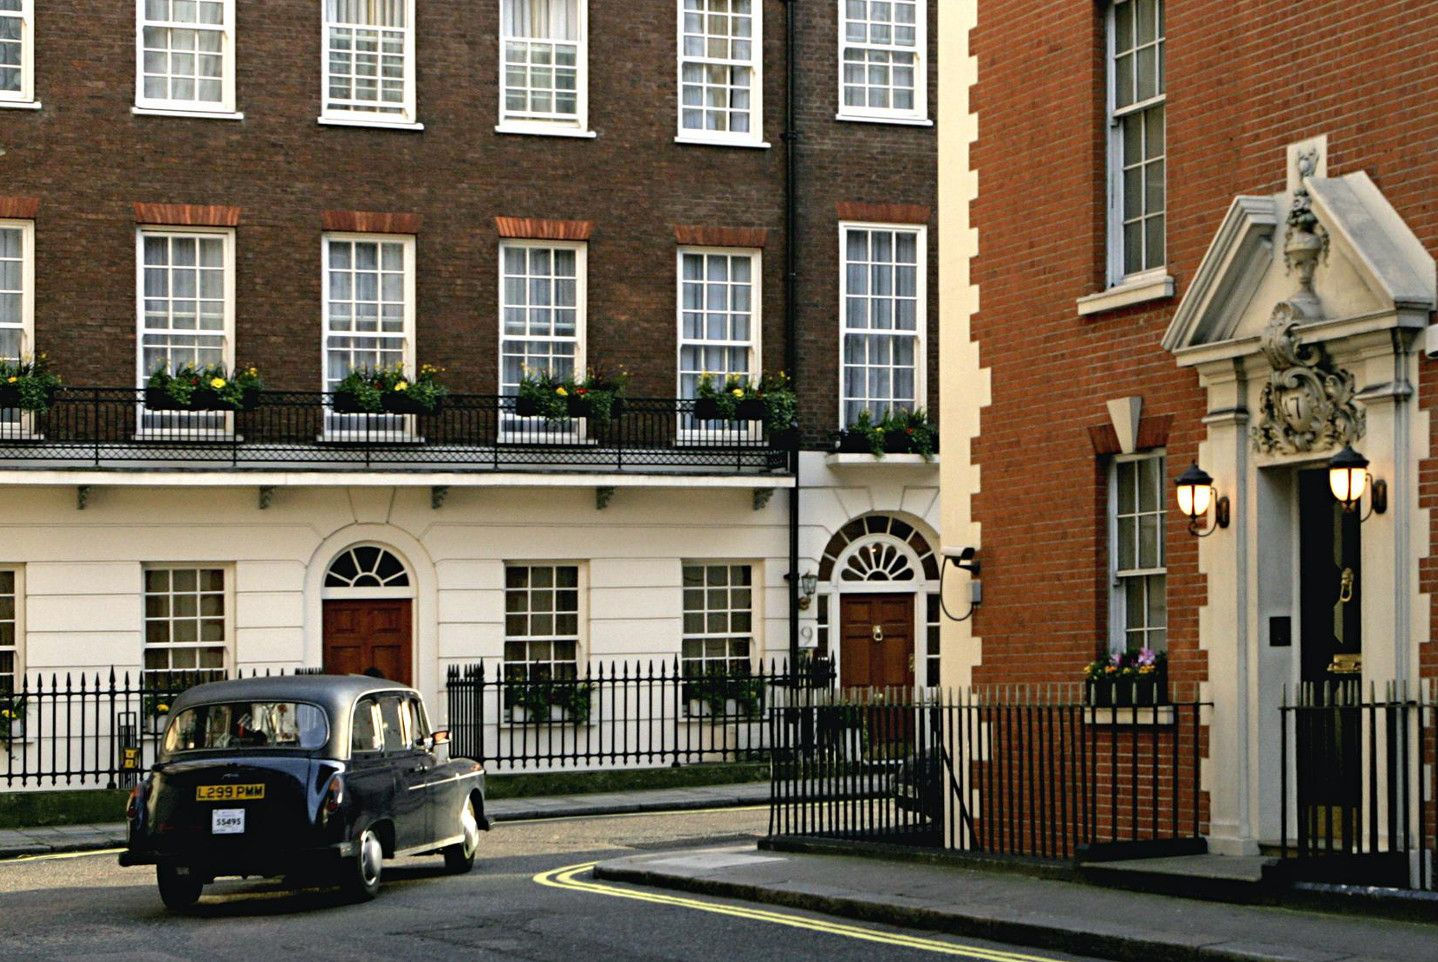 Hotel london mayfair with exclusive shopping near to Bond Street